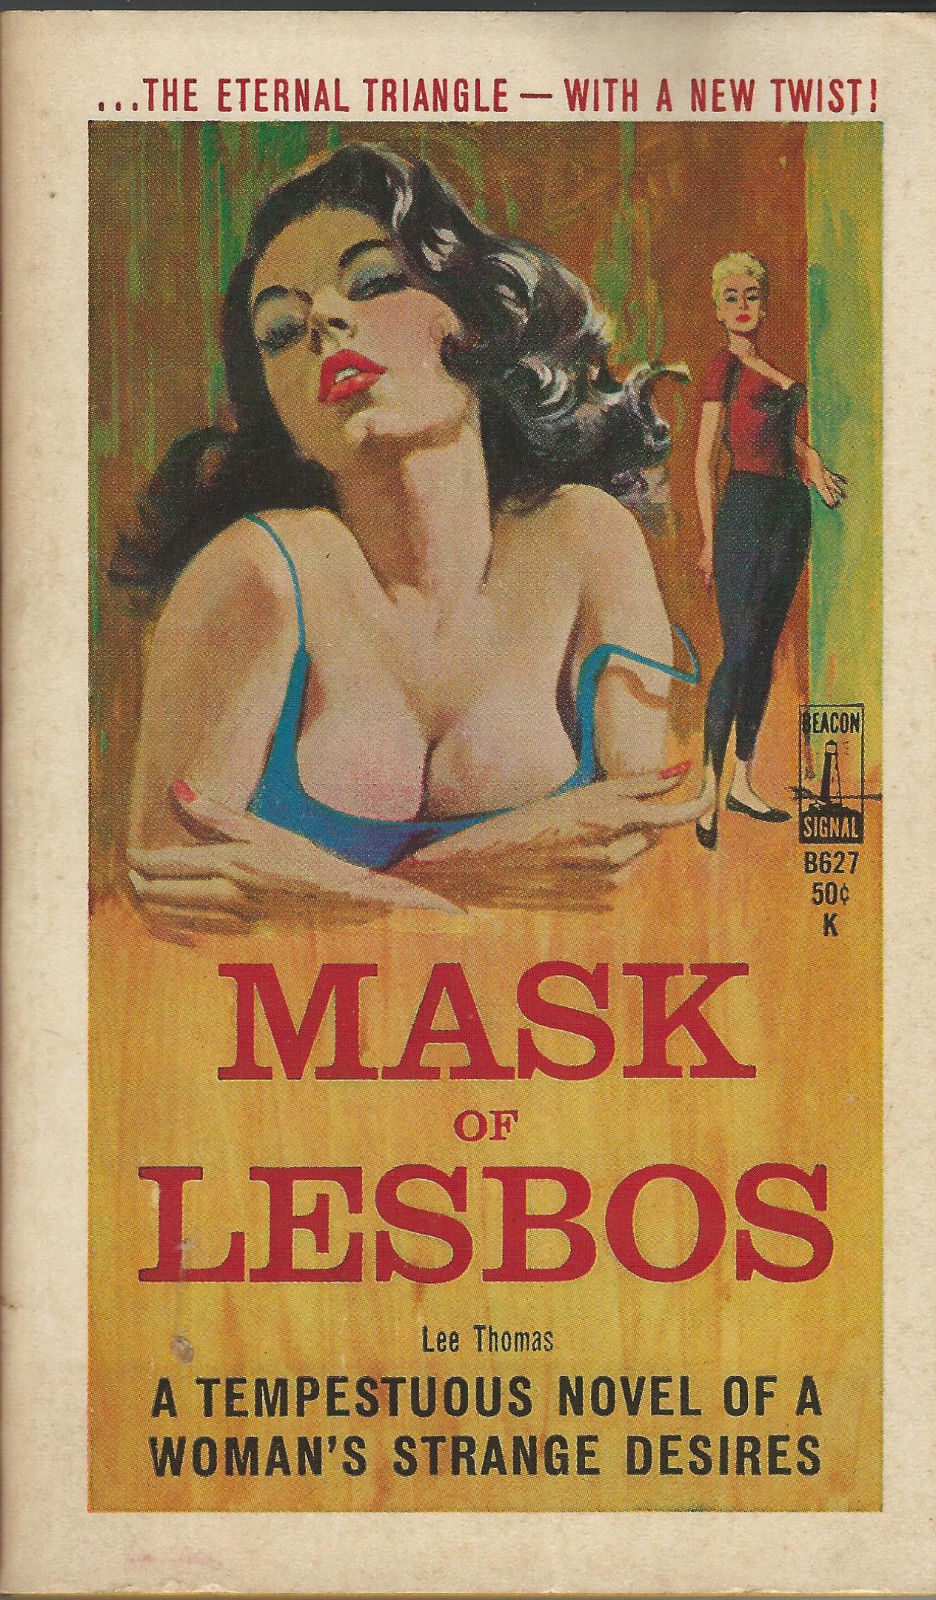 Erotic novels for men